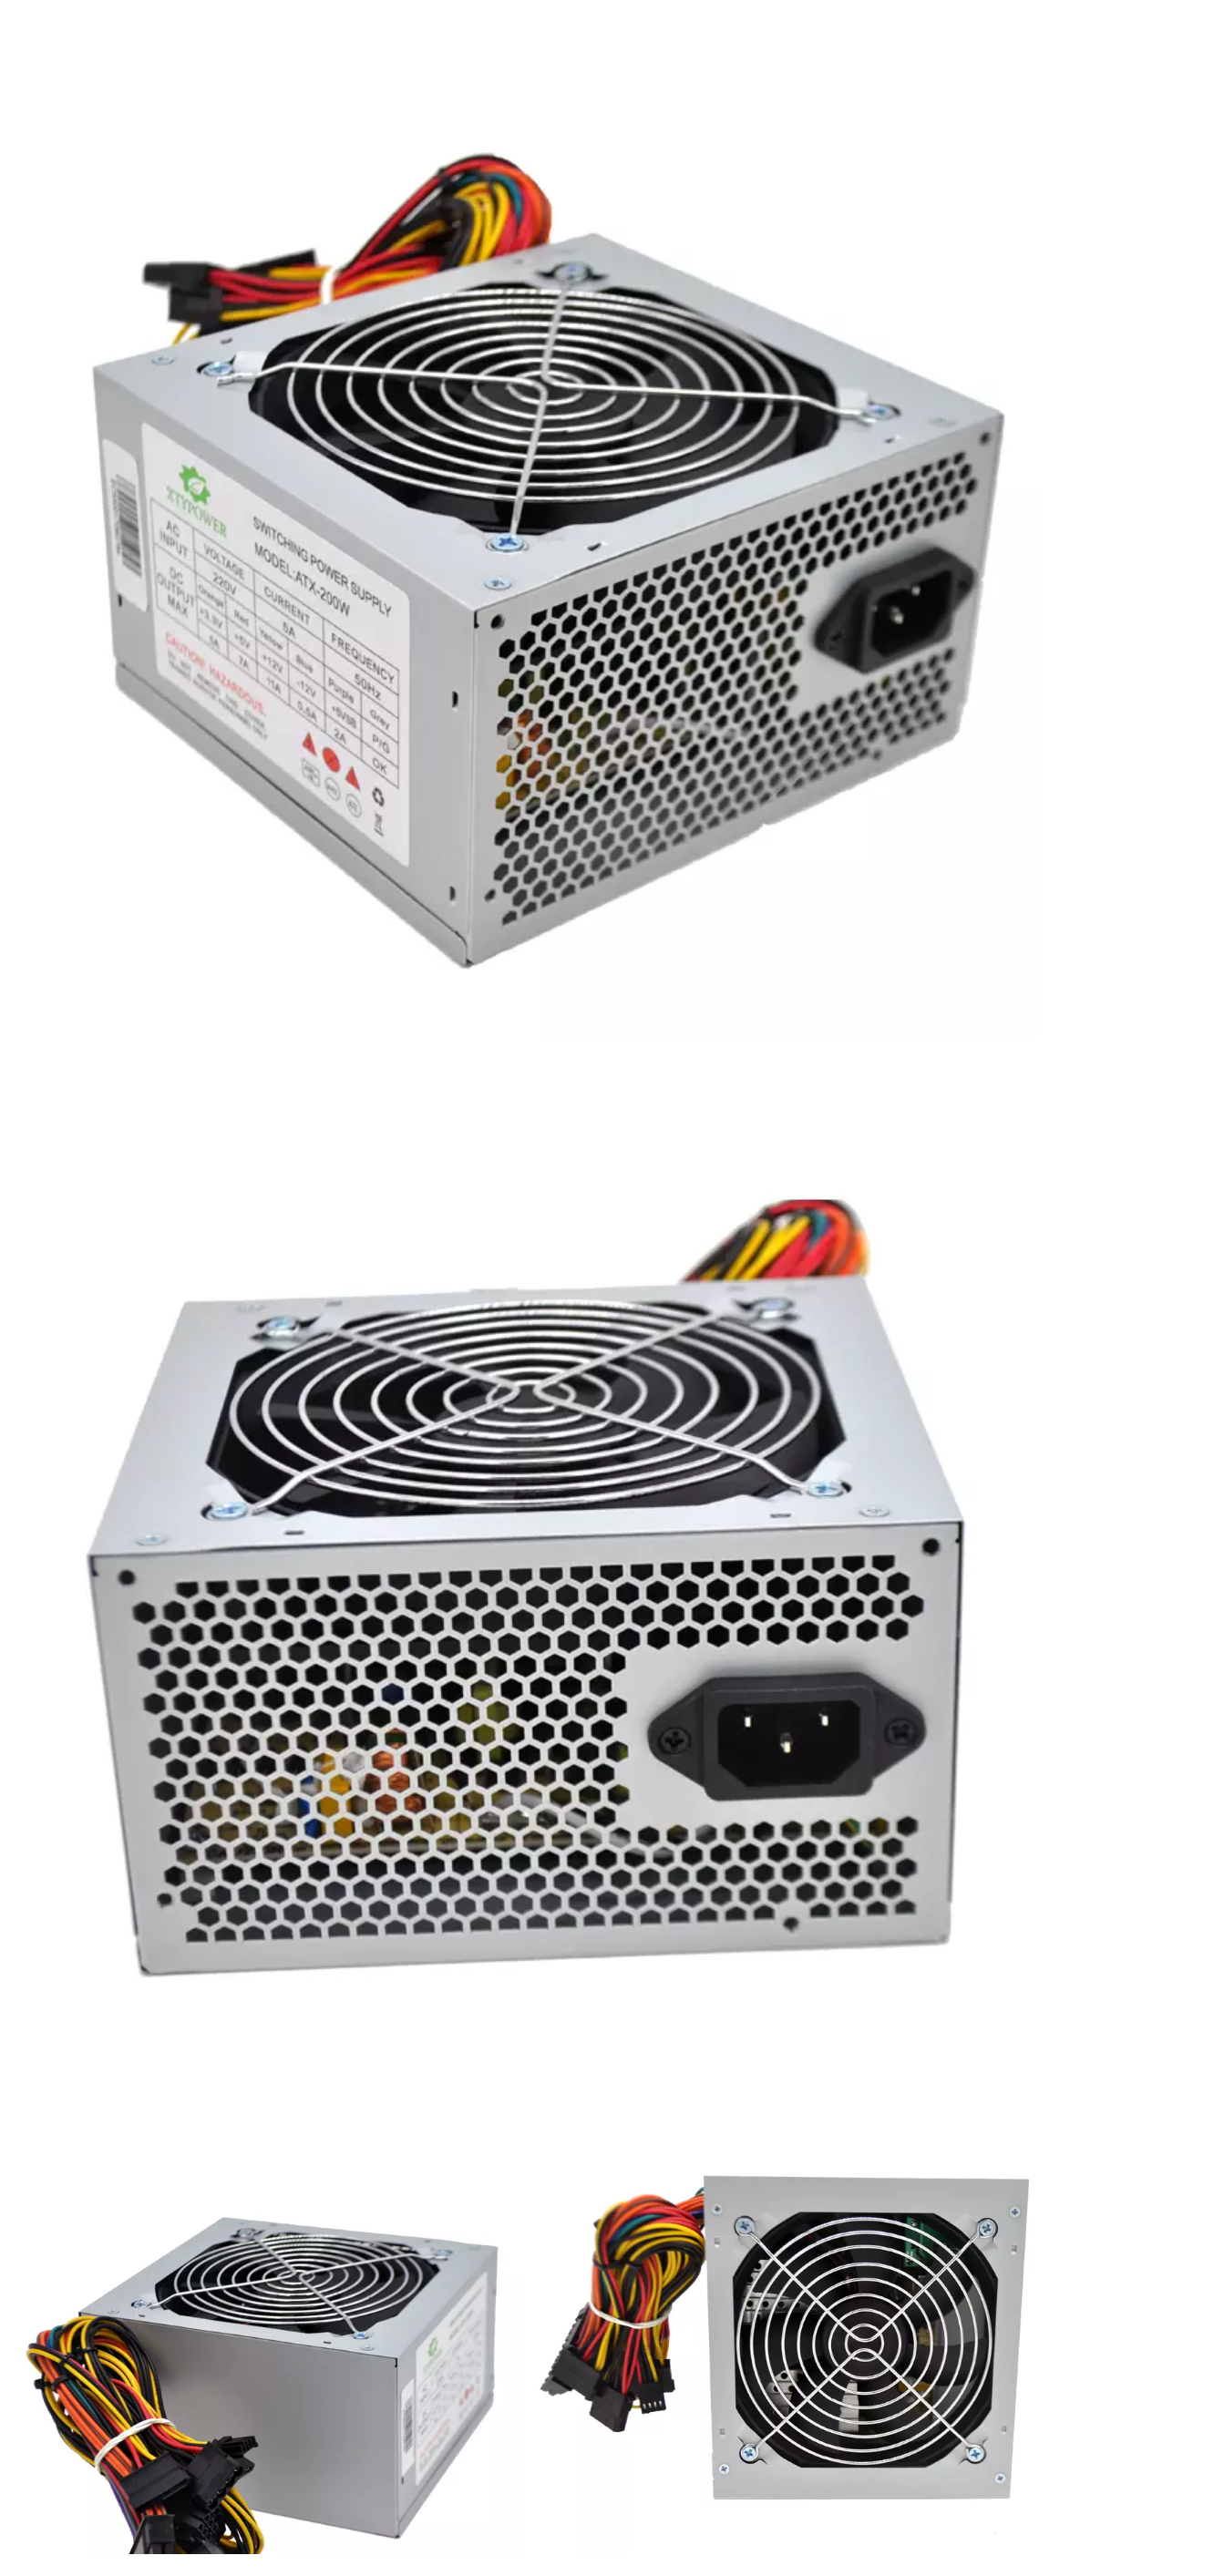 atx pc power supply 200w psu for desktop12cm fan,